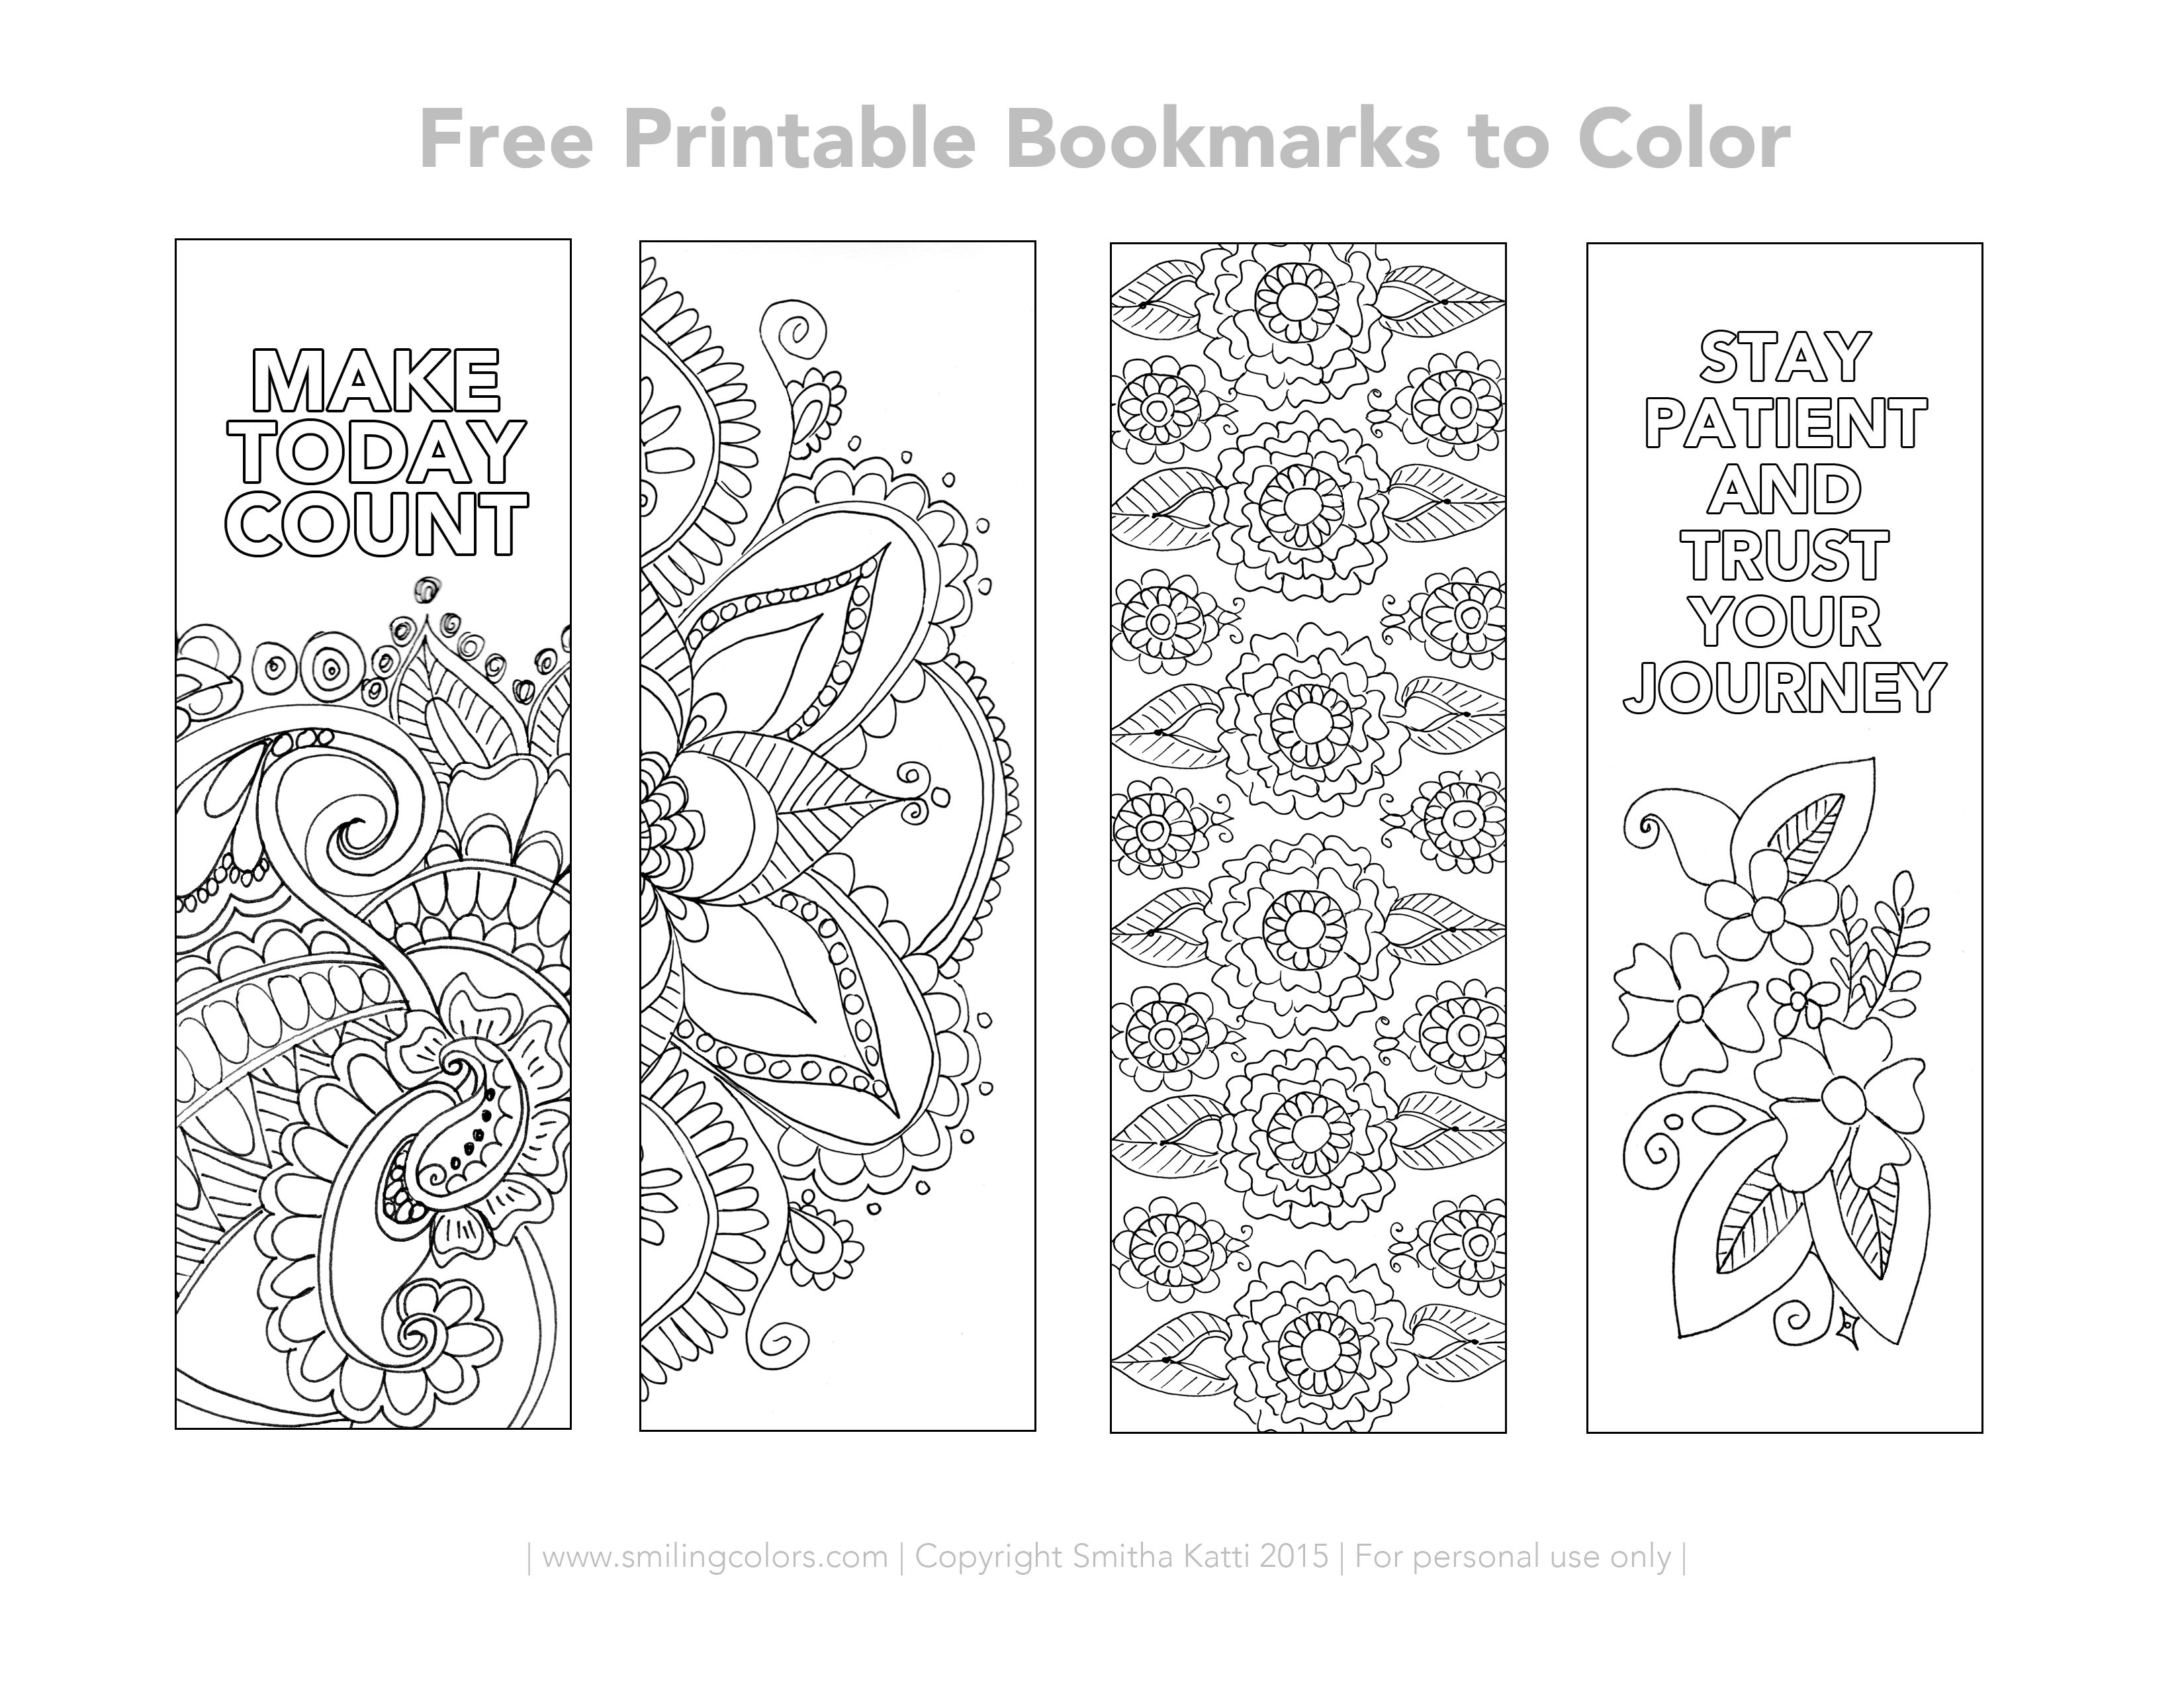 Free Printable Bookmarks To Color Free Printable Bookmarks